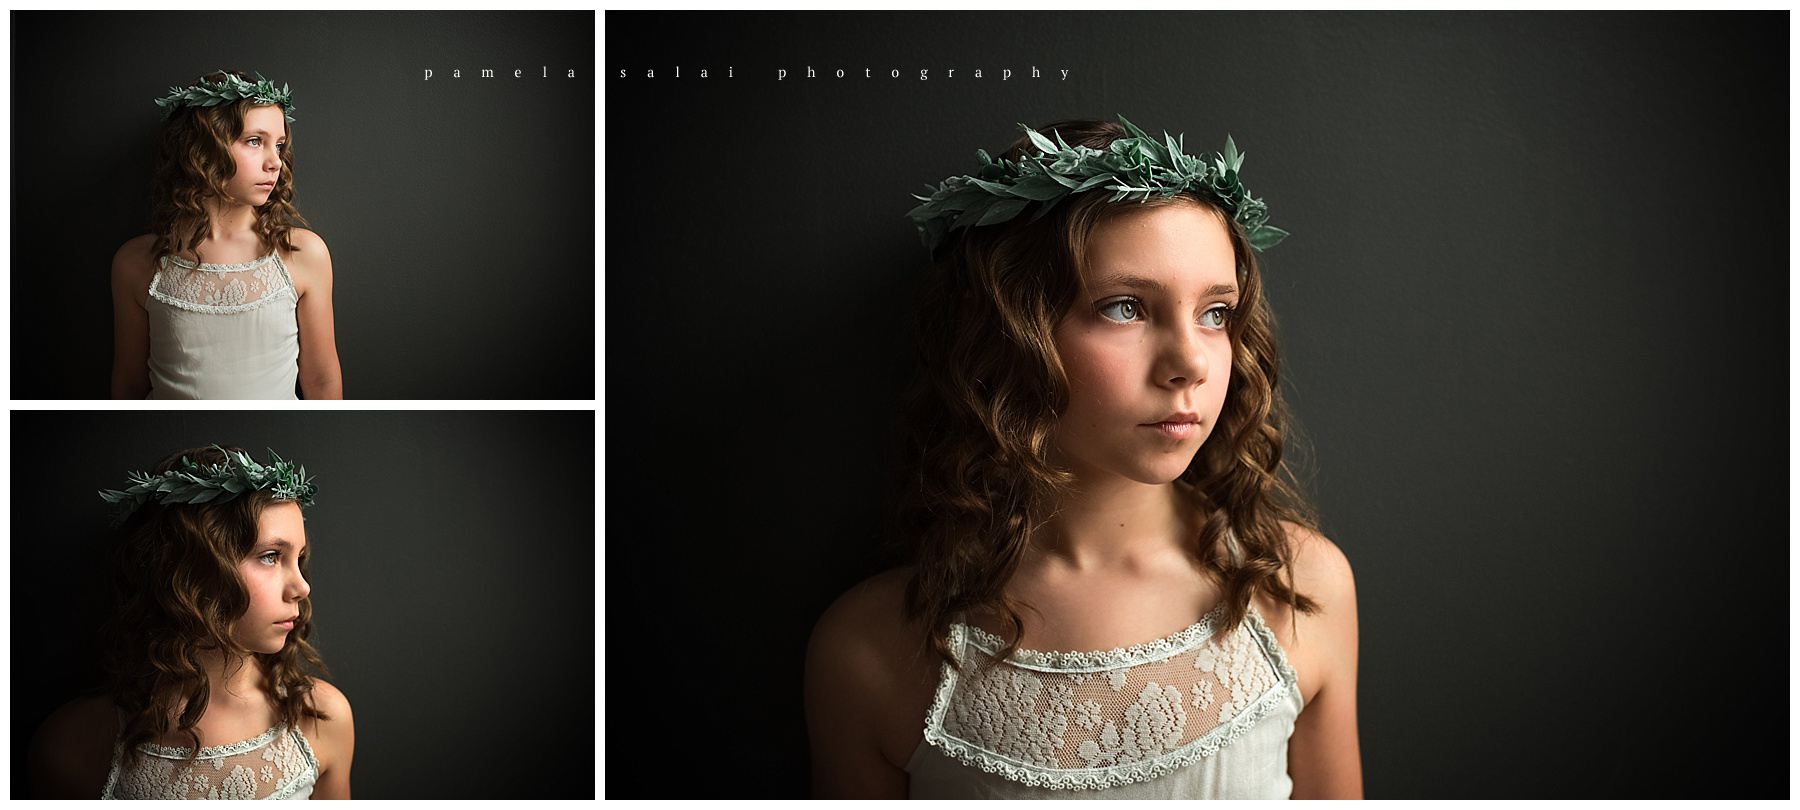 Dramatic light window light natural light child posing floral crown simple pose studio